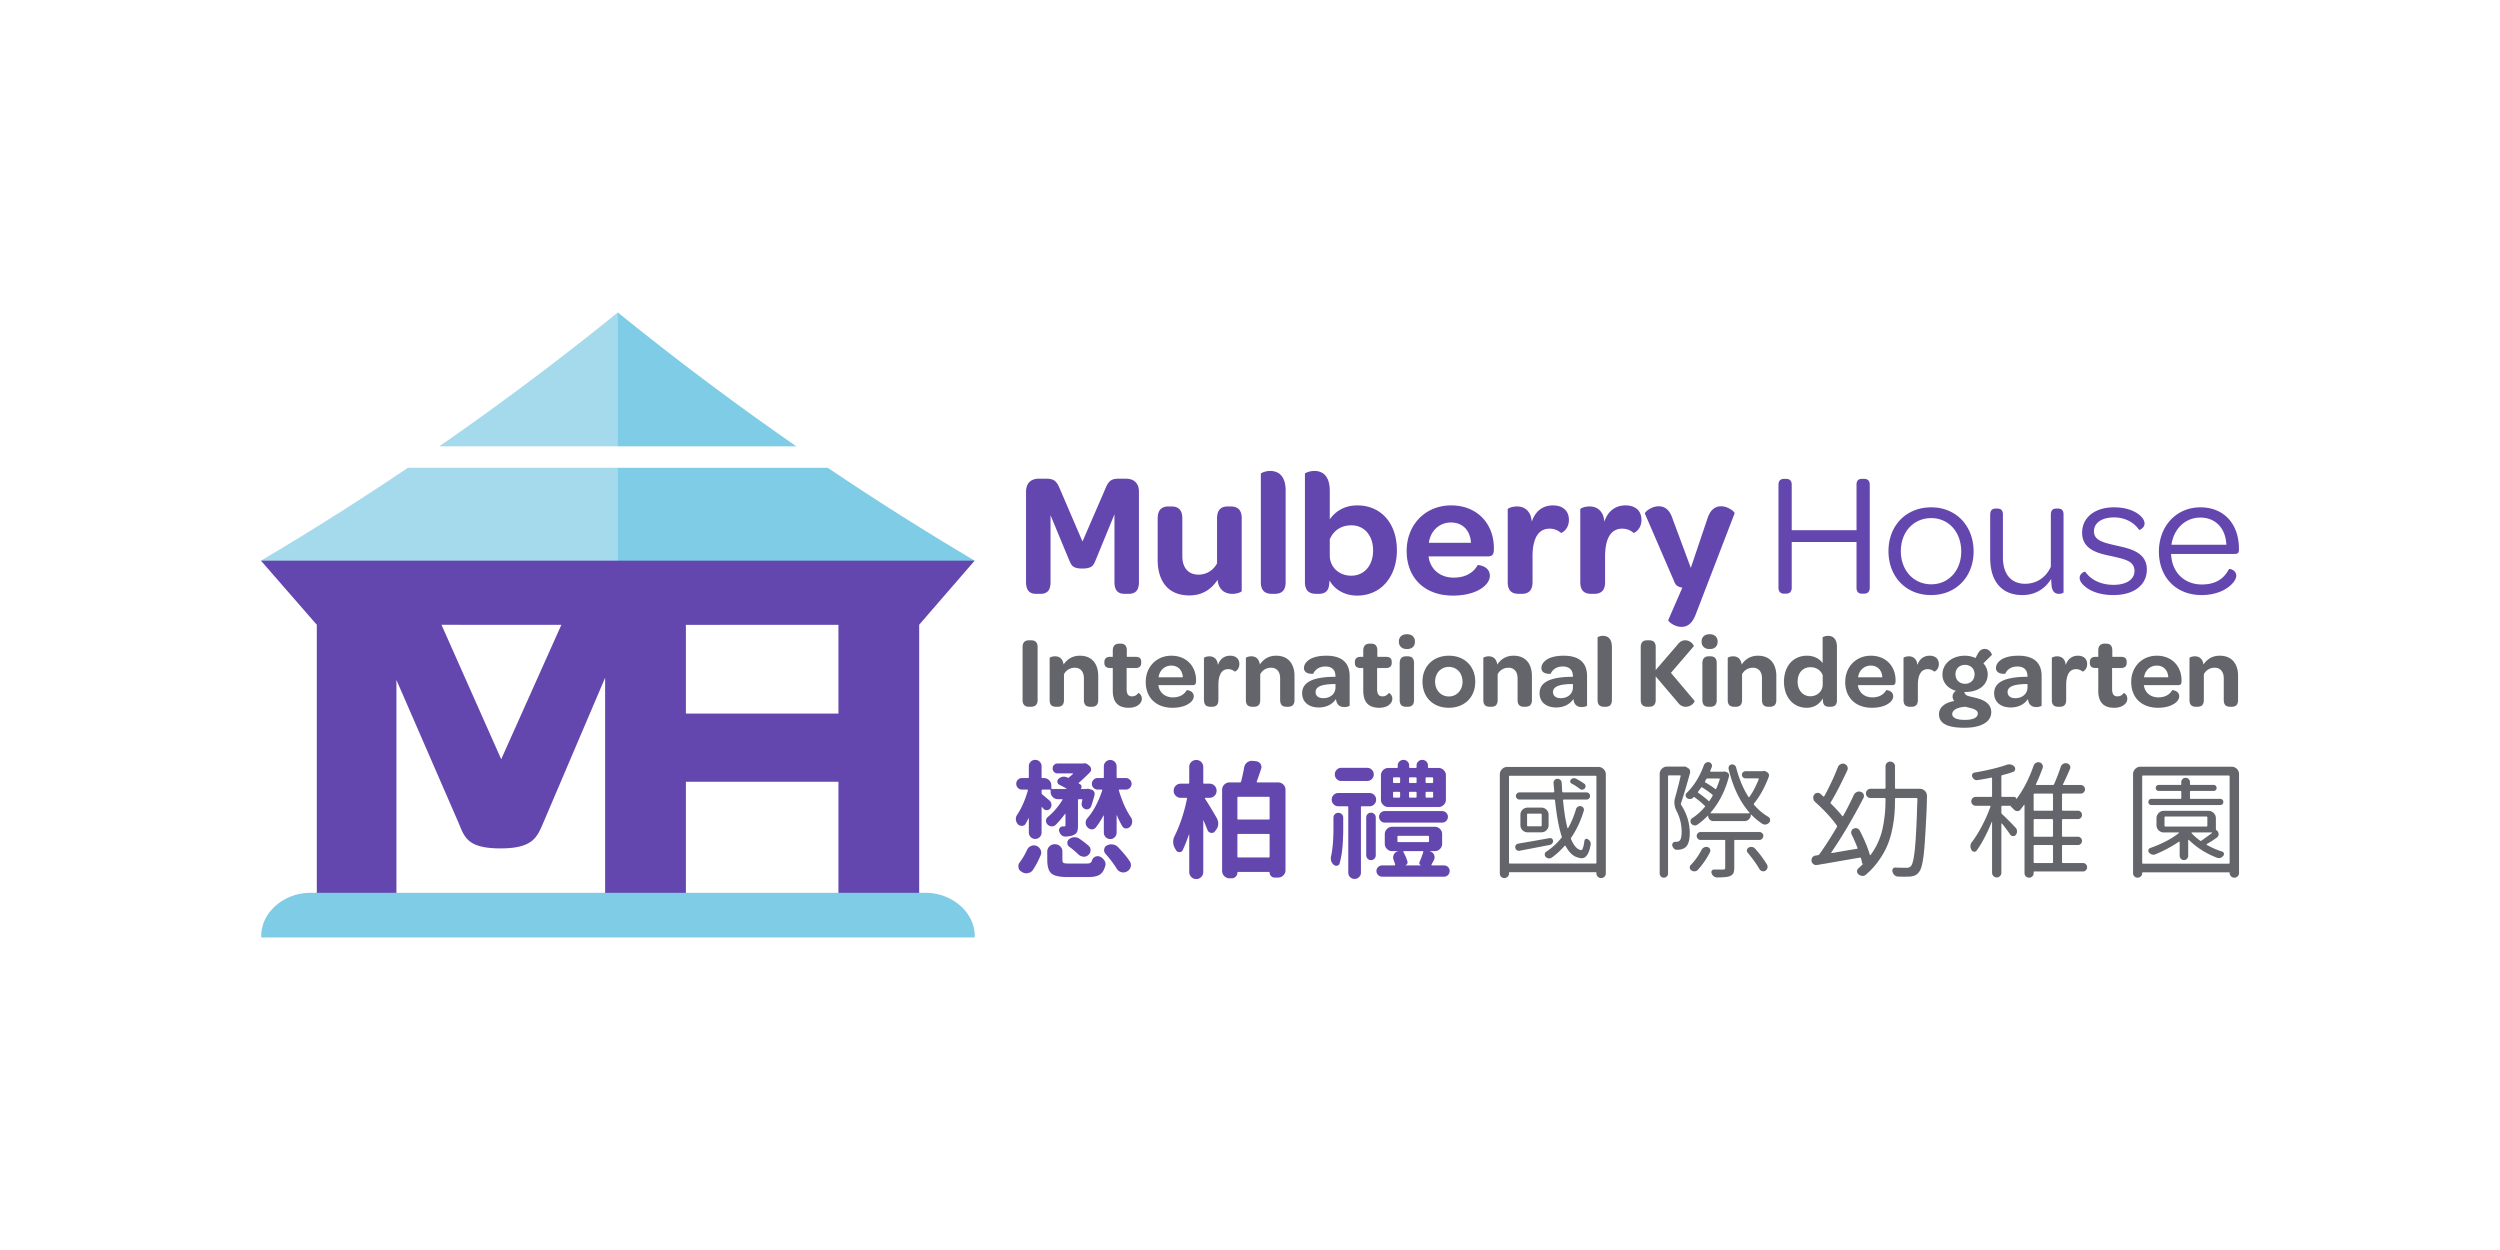 Mulberry House International Kindergarten